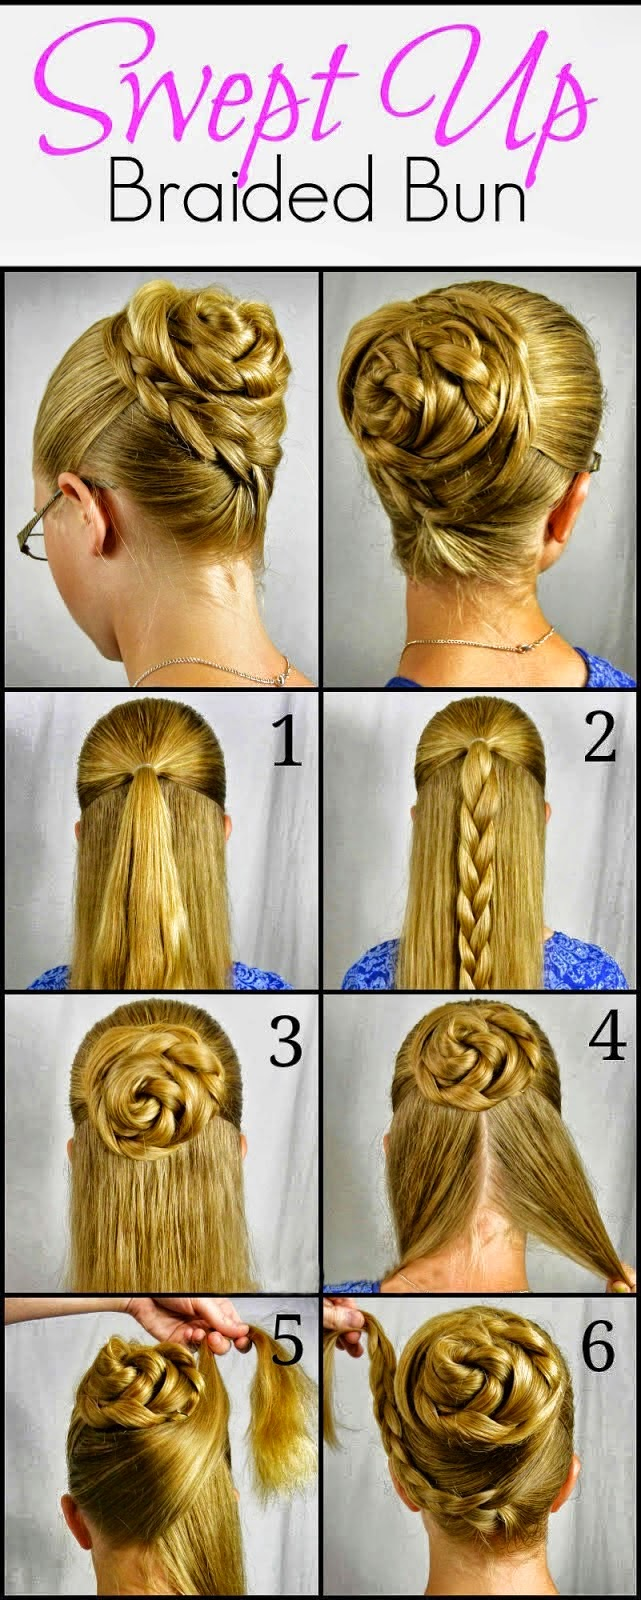 Swept Up Rose Braid Bun Hairstyle Step By Step Beauty And Fashion